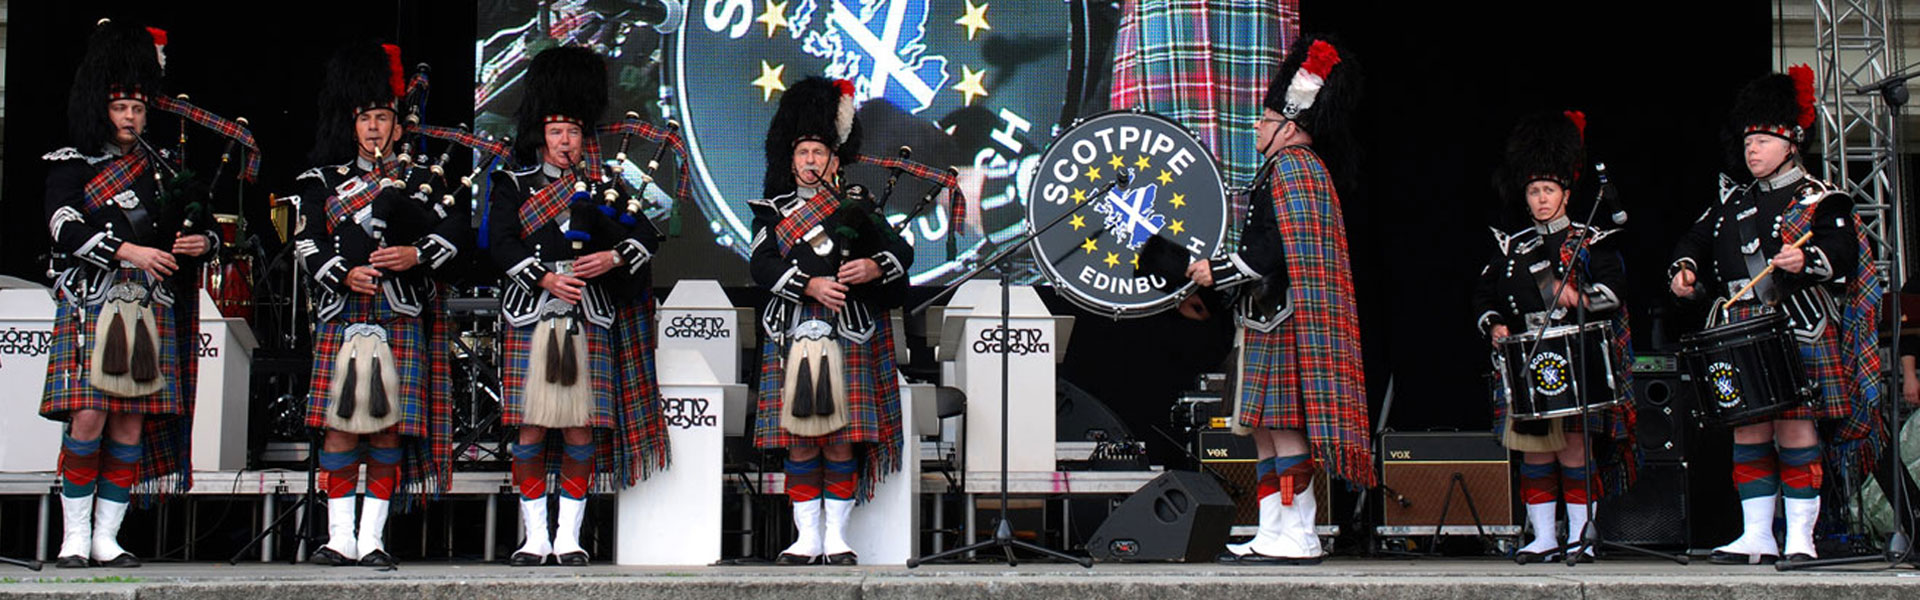 SCOTPIPE Pipe Band